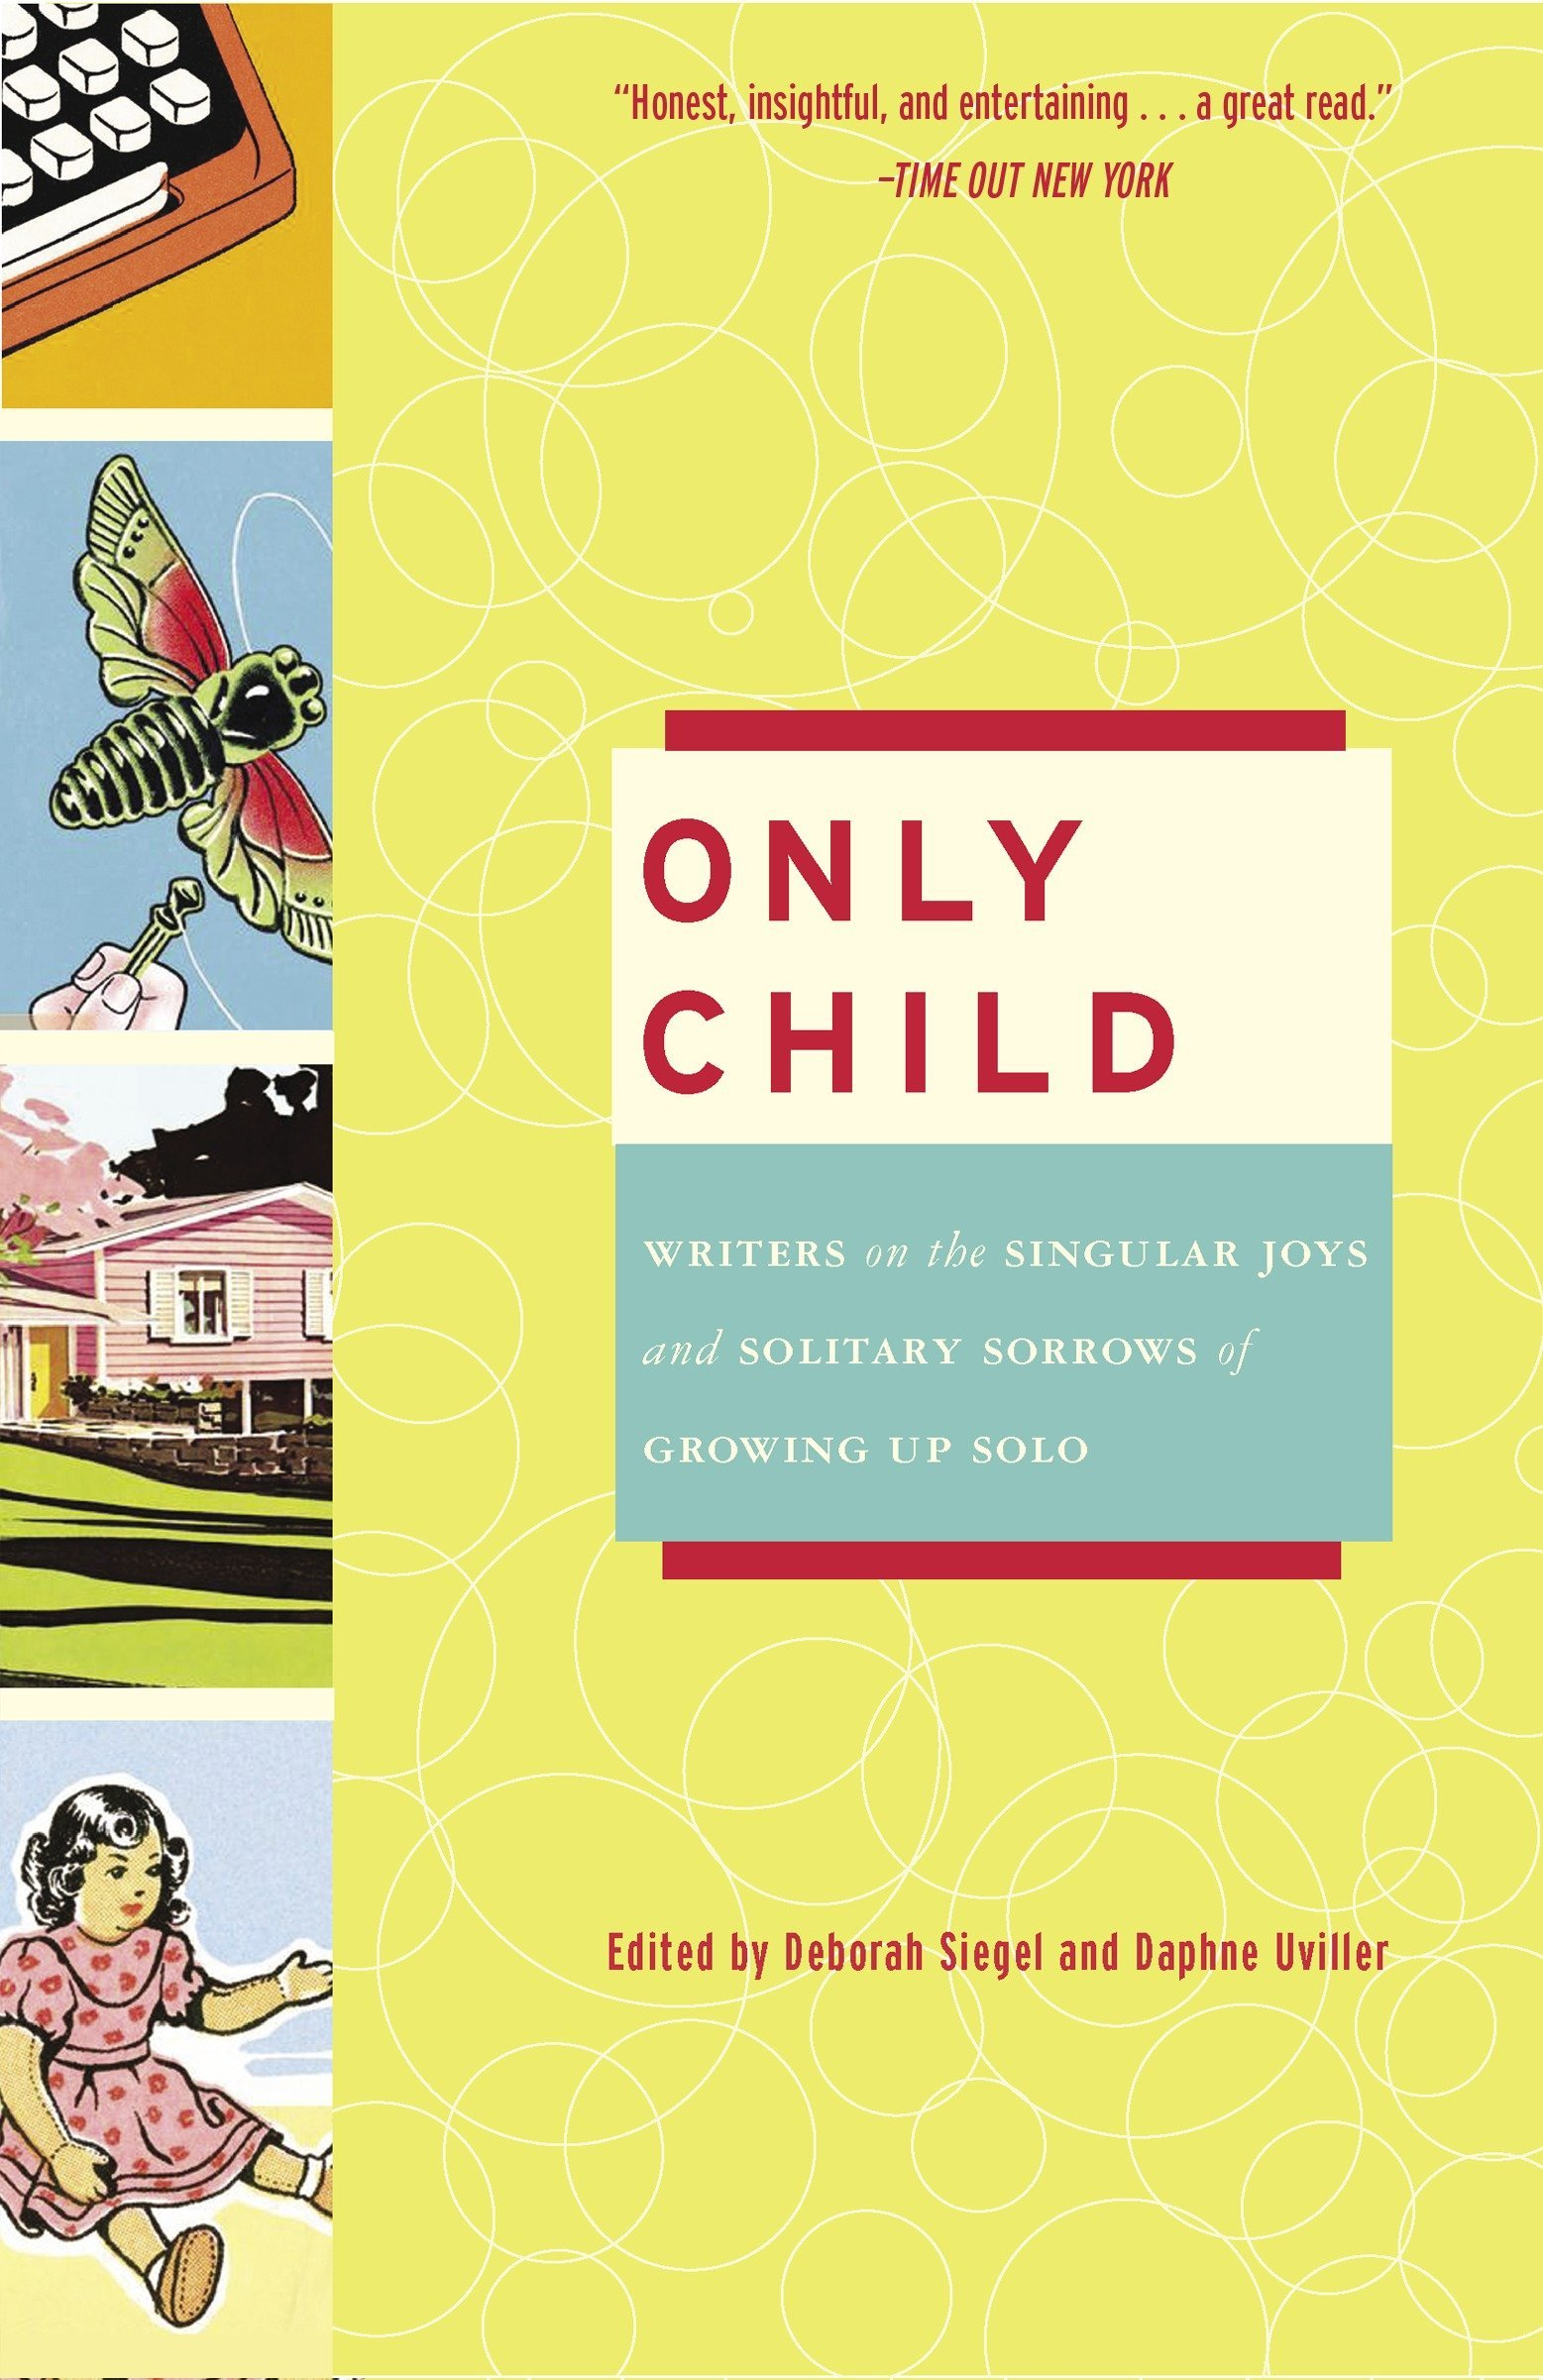 Only Child: Writers on the Singular Joys and Solitary Sorrows of Growing Up  Solo: Deborah Siegel, Daphne Uviller: 9780307238078: Amazon.com: Books